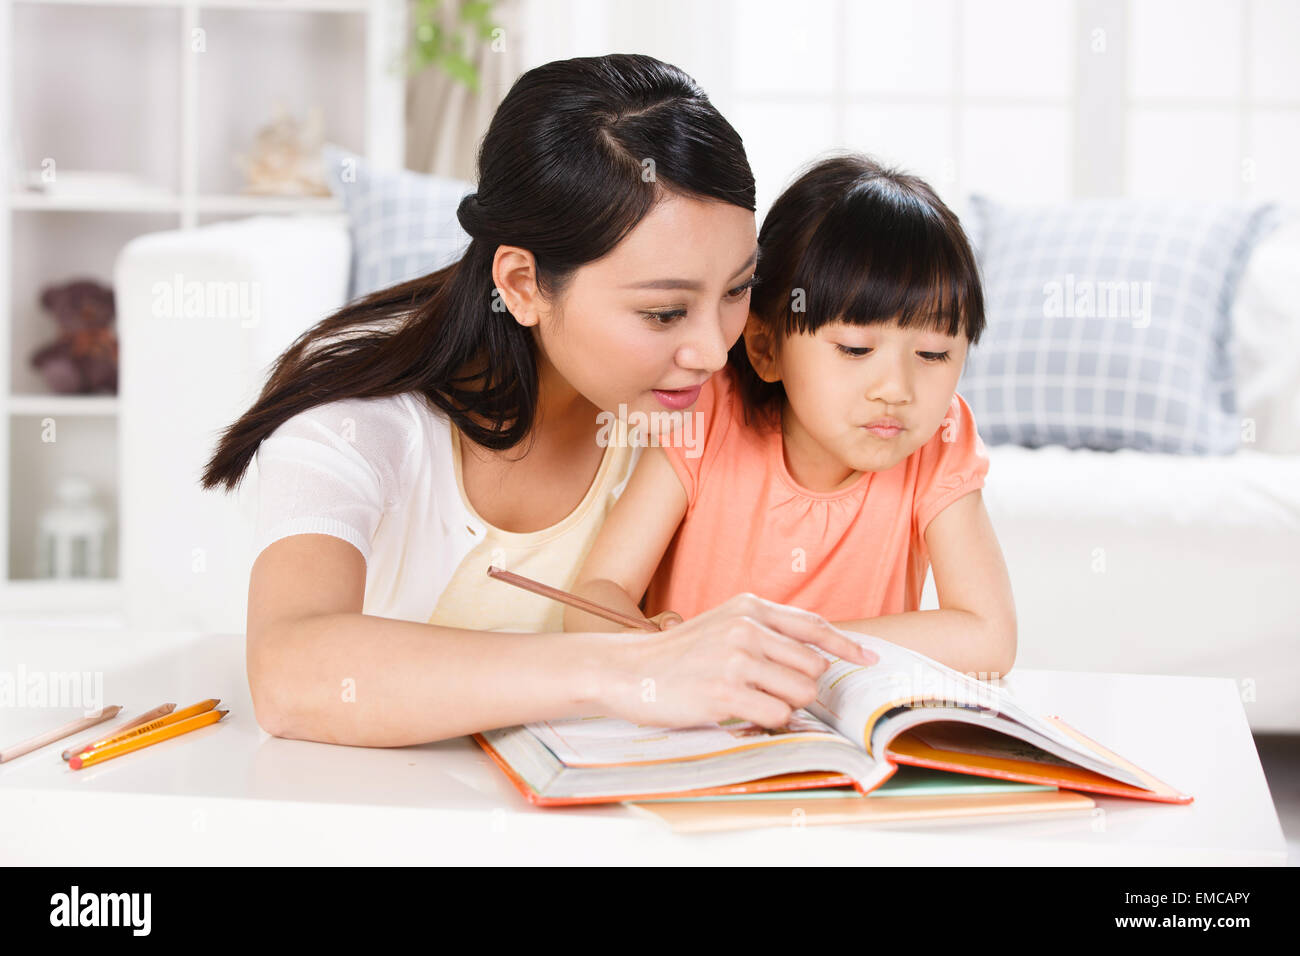 Mother guiding daughter study in the living room - Stock Image